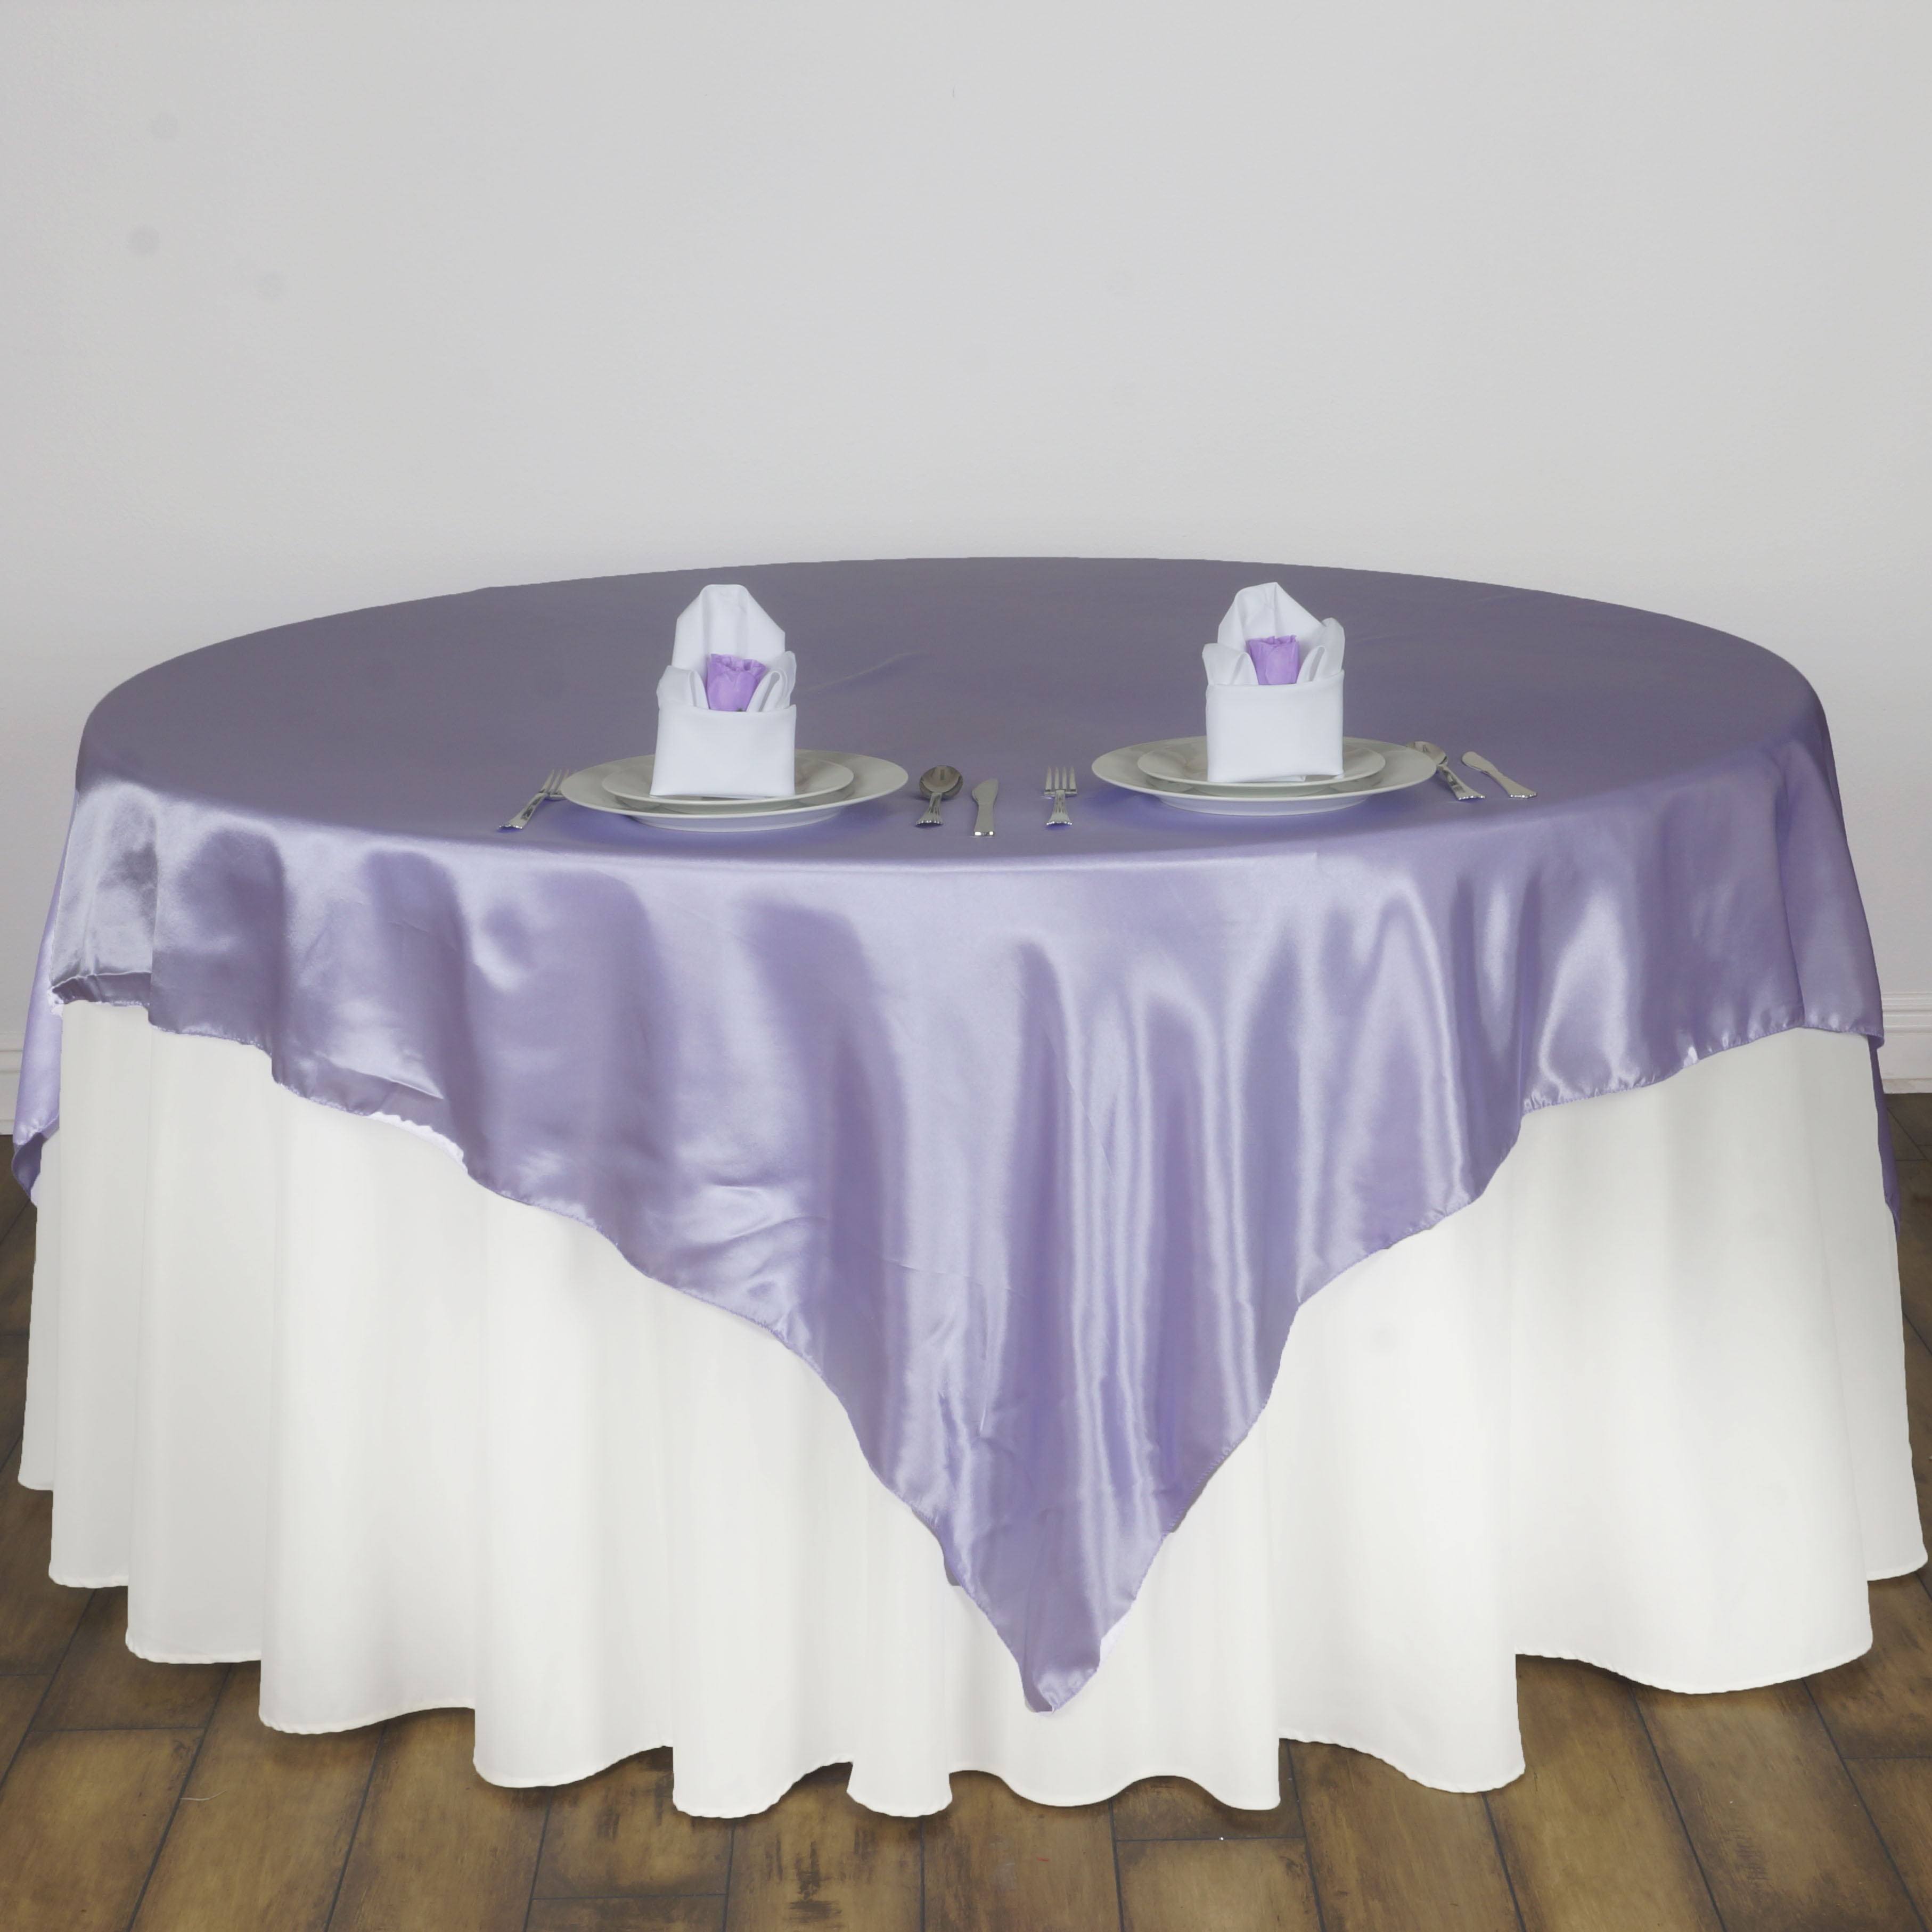 72x72 Quot Square Satin Table Overlays Wedding Party Linens